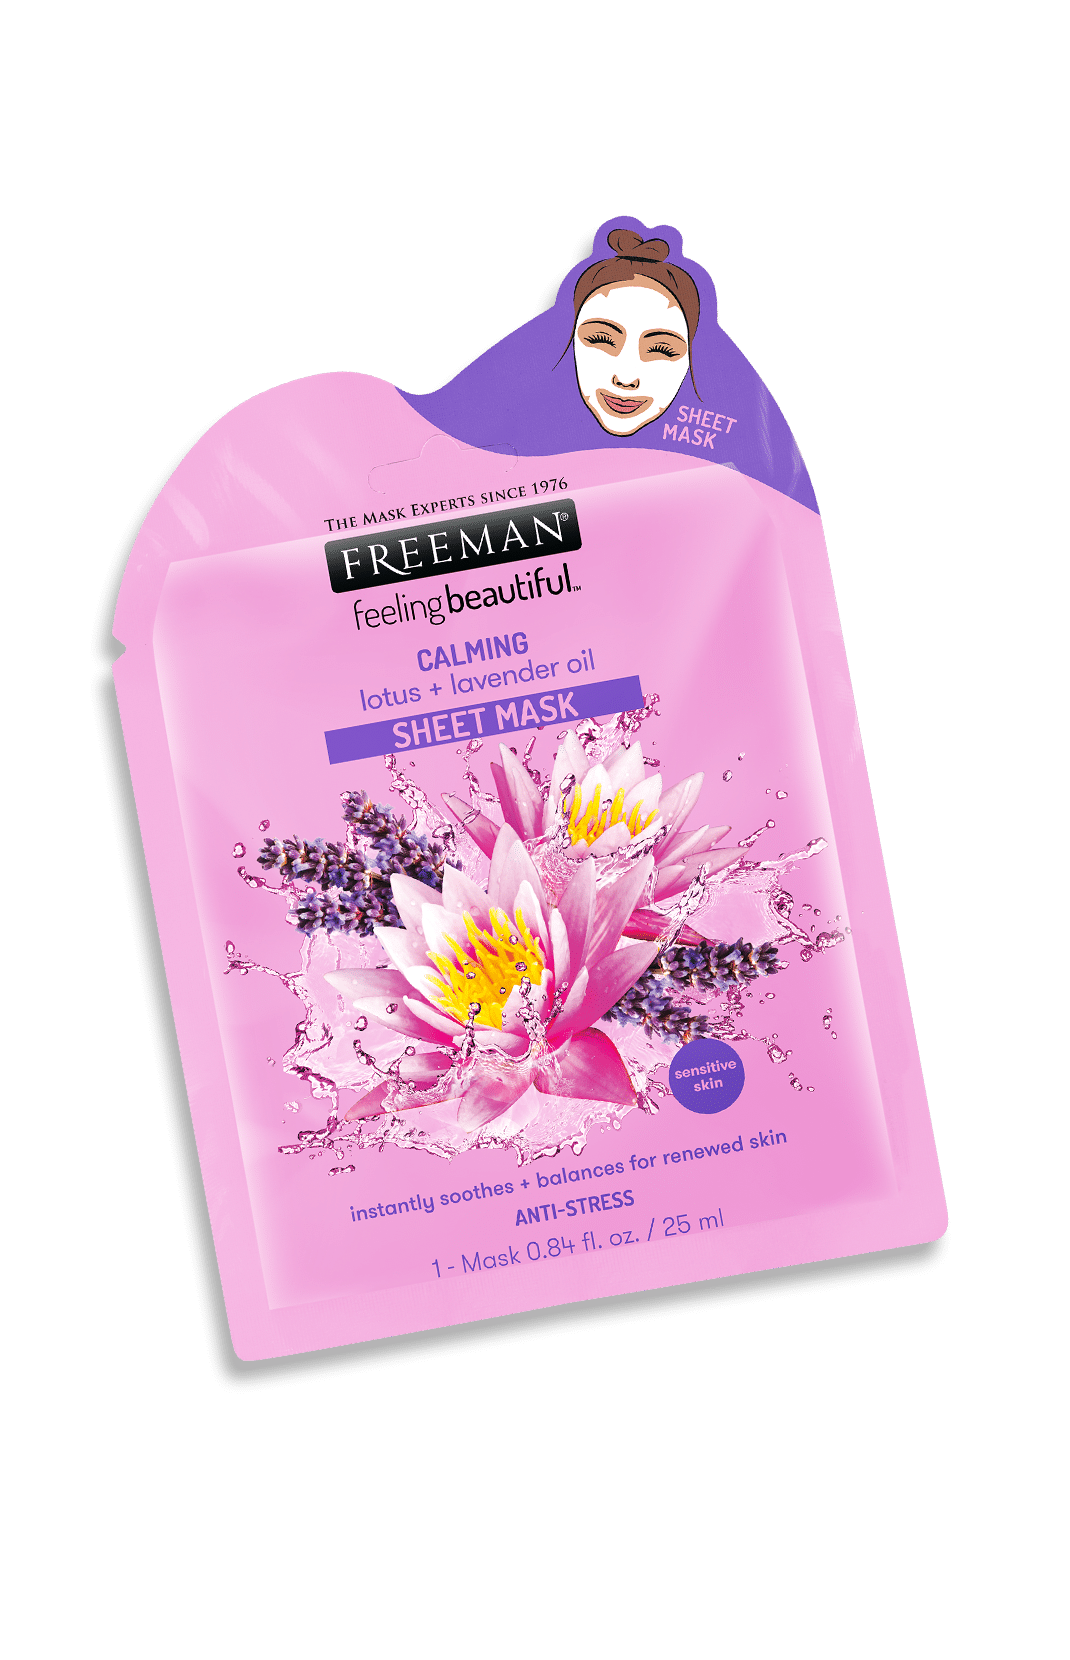 CALMING lotus + lavender oil SHEET MASK